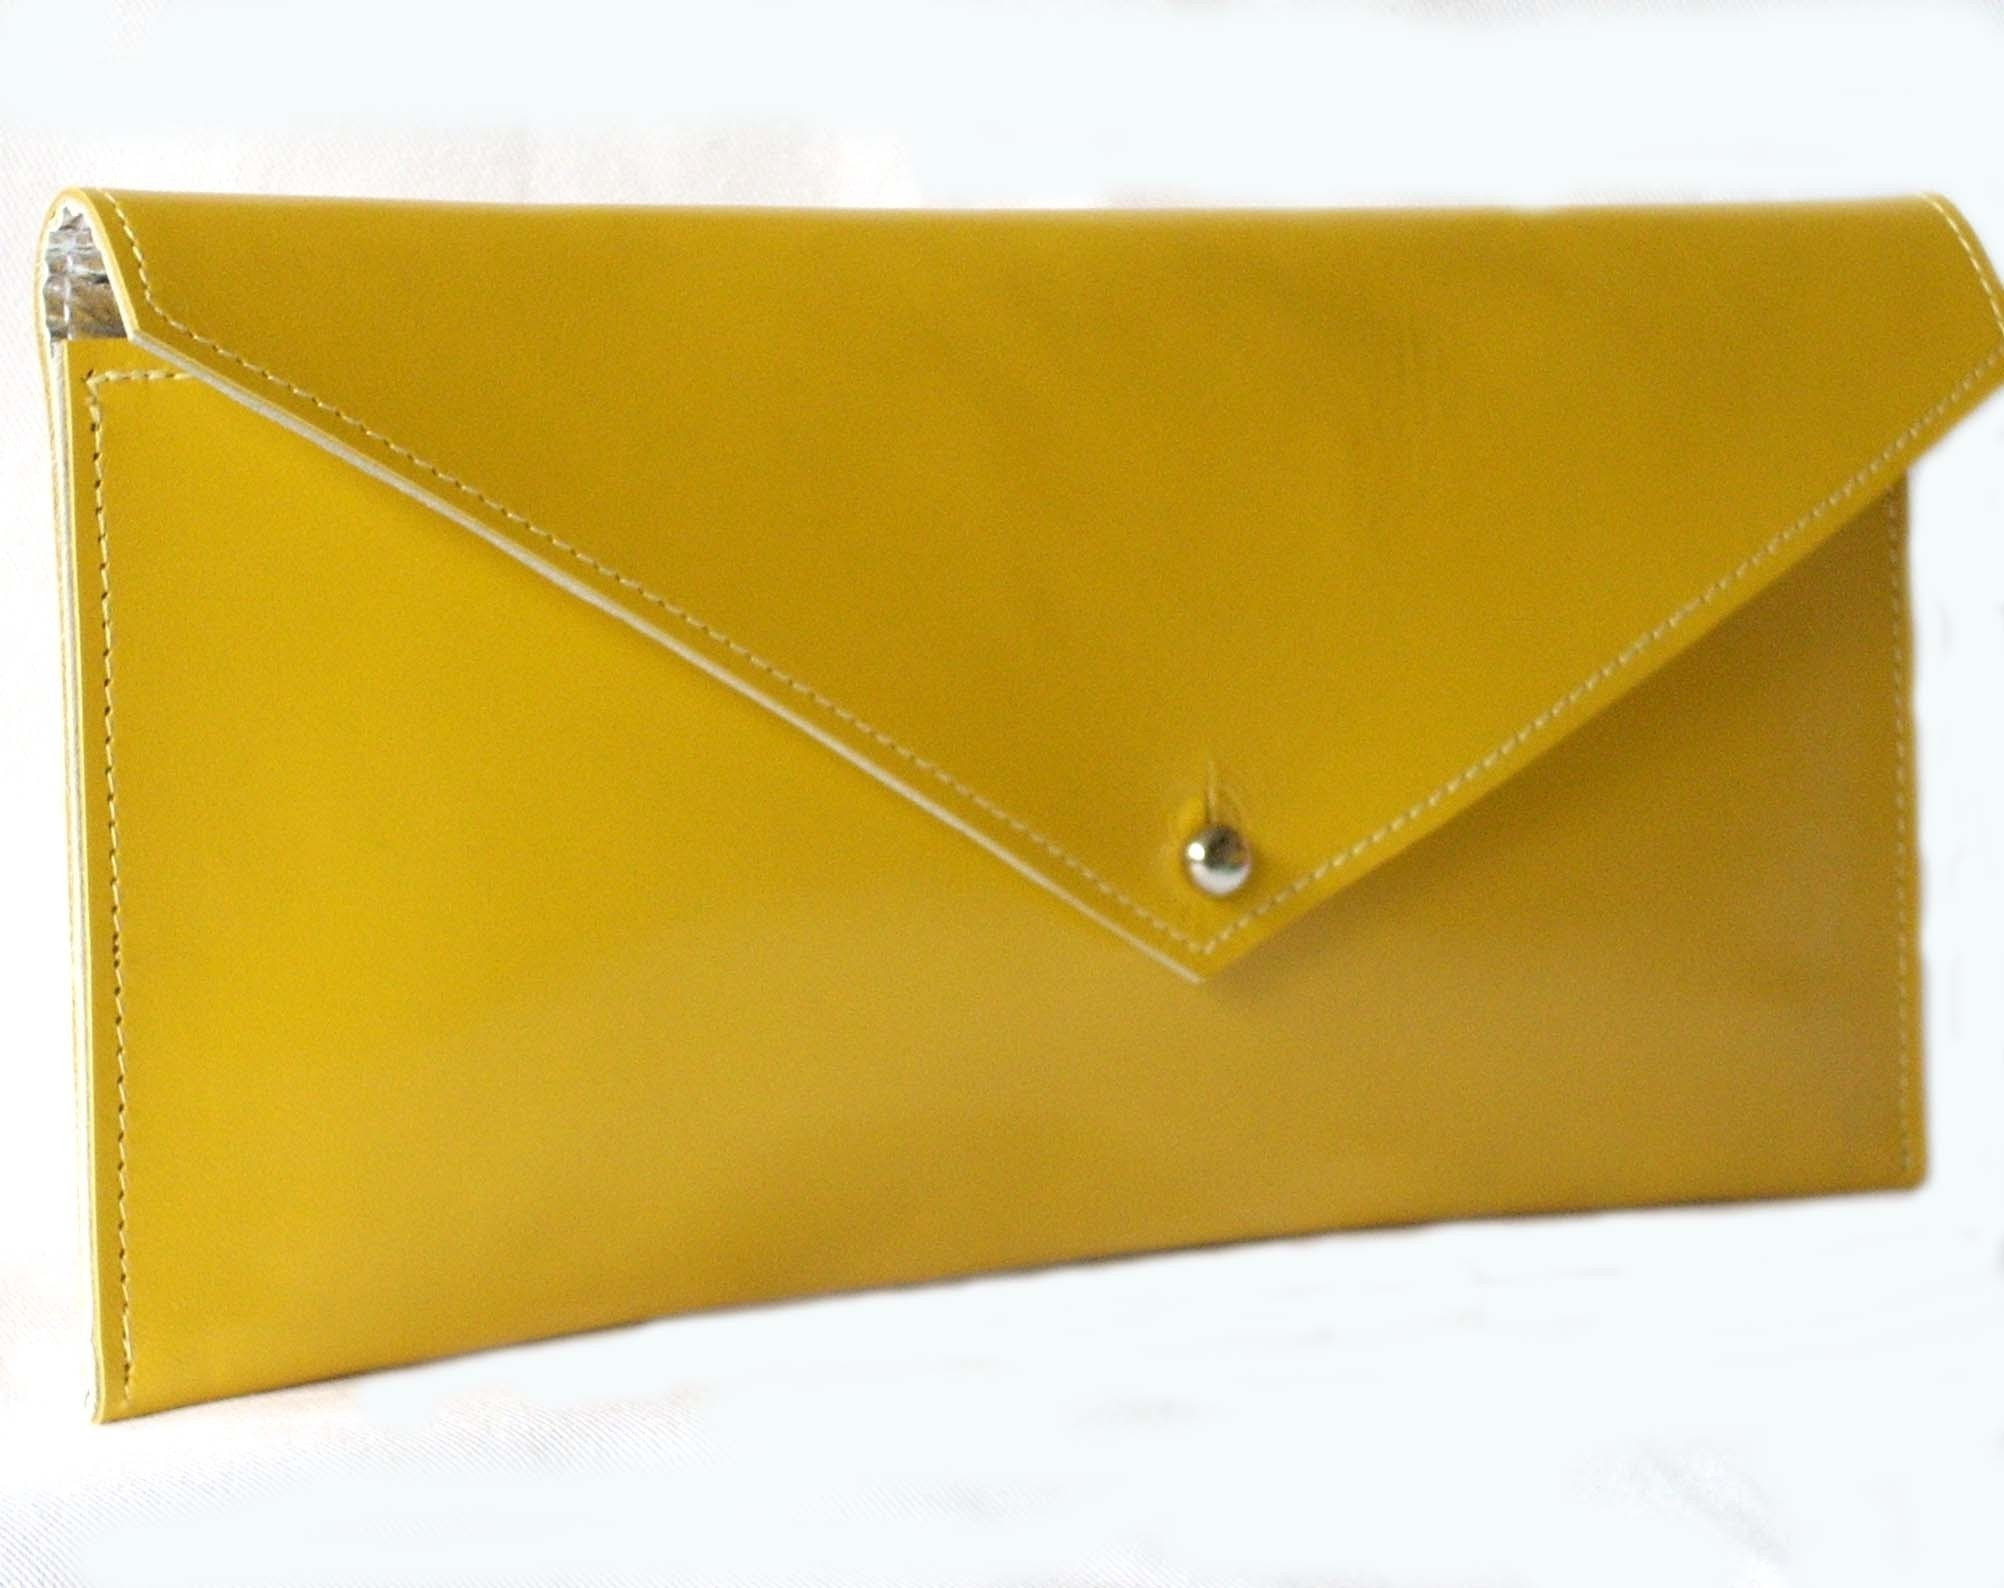 Bold yellow leather clutch - FREE SHIPPING